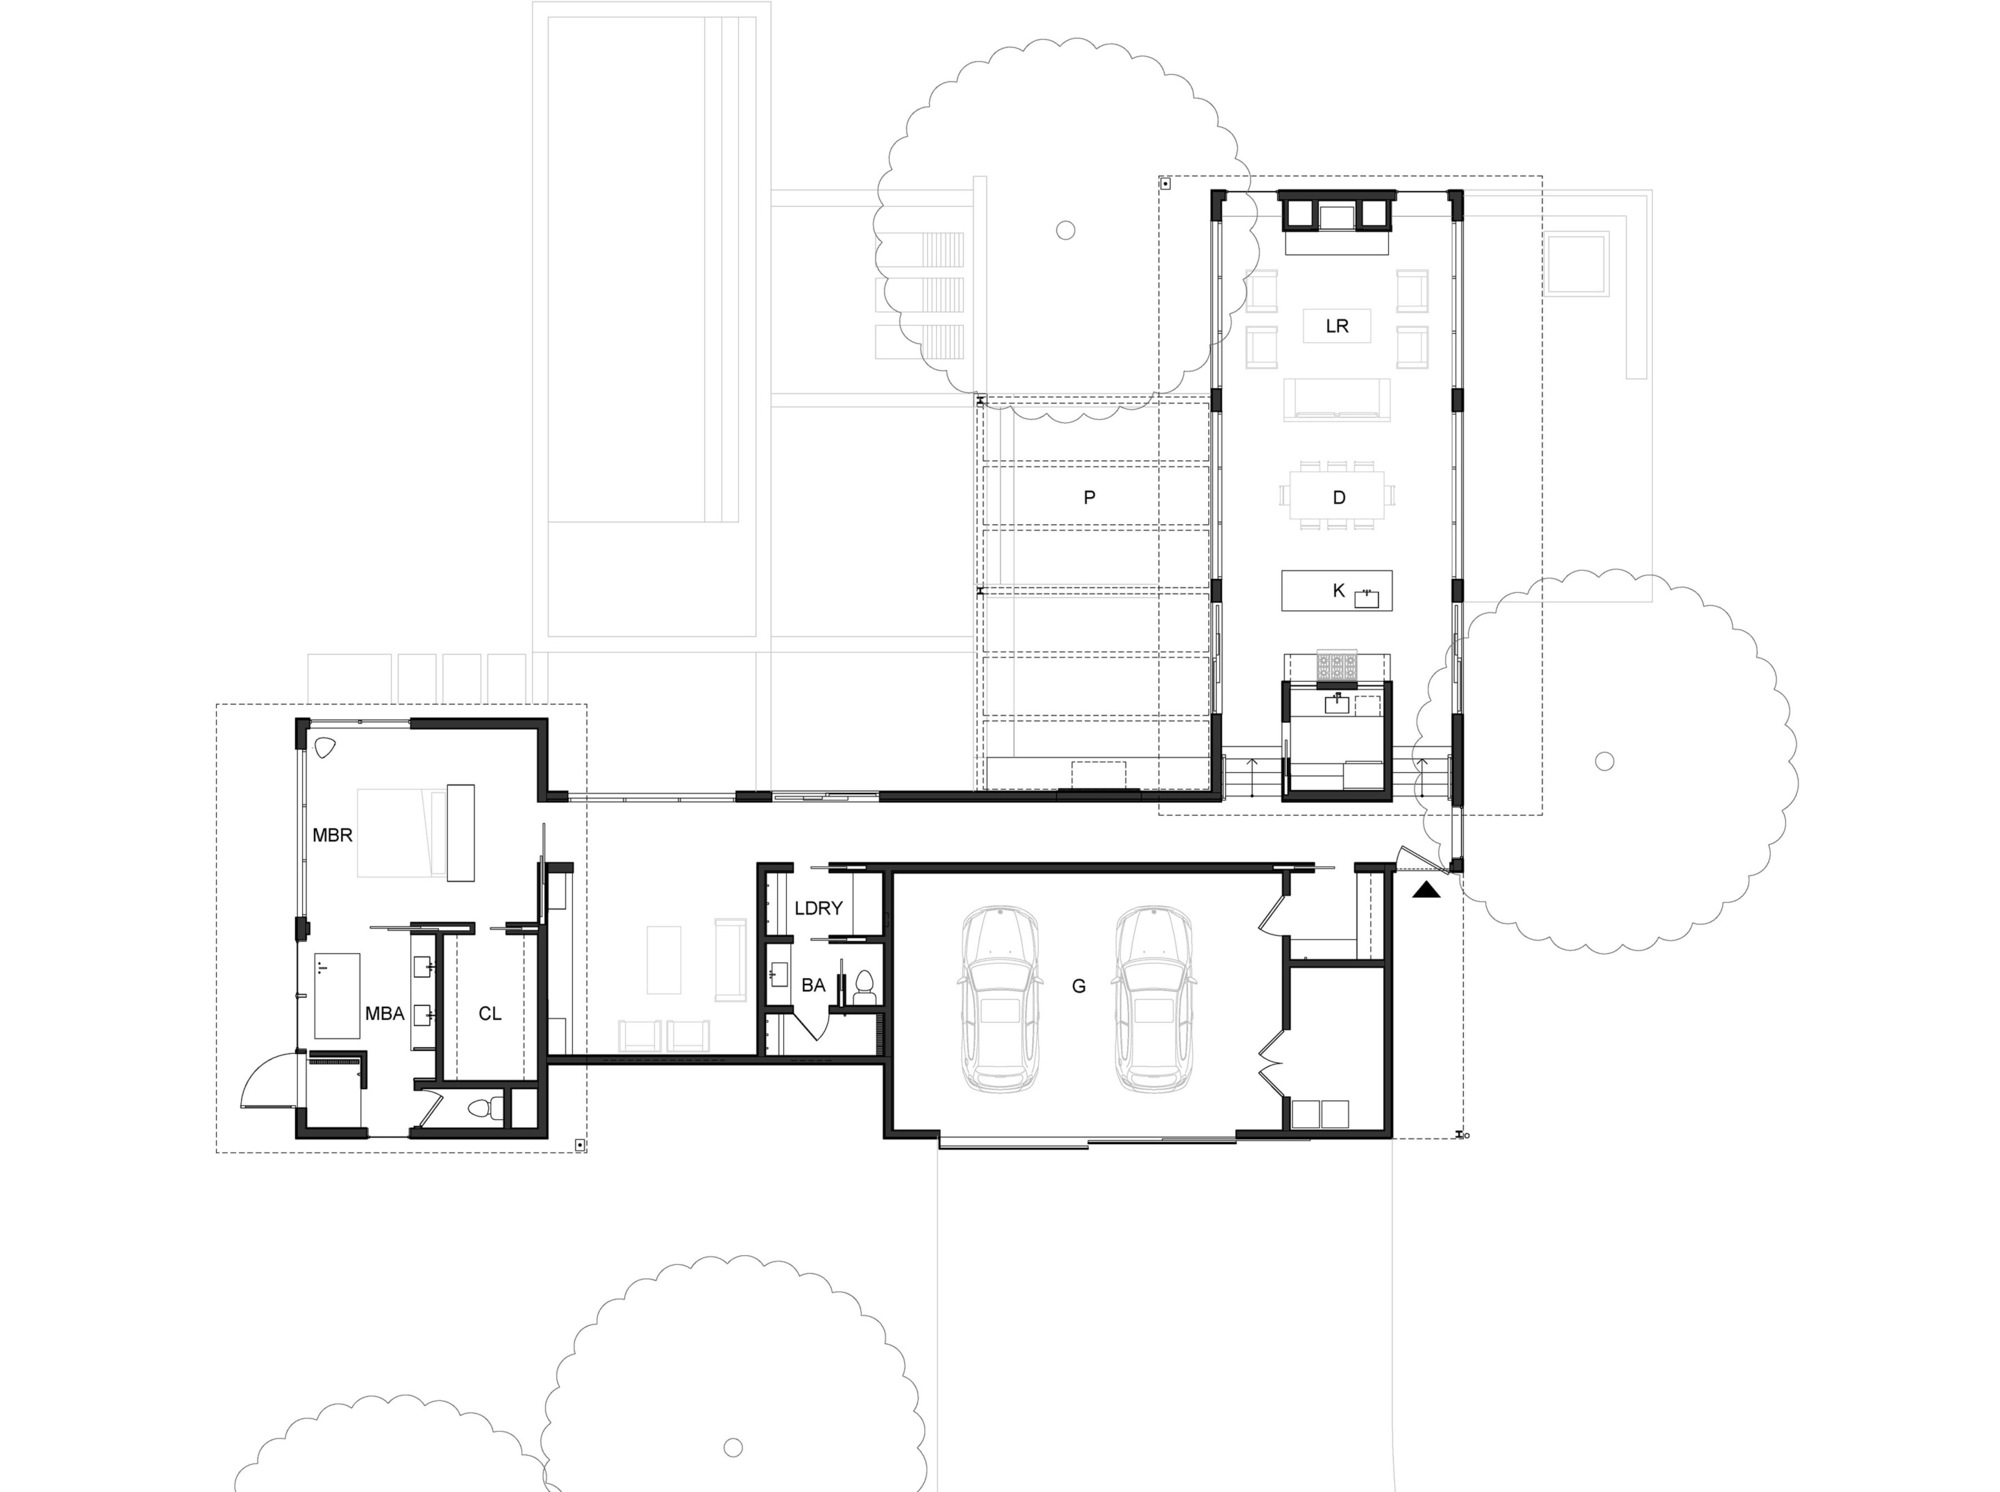 gallery architecture plan - photo #38